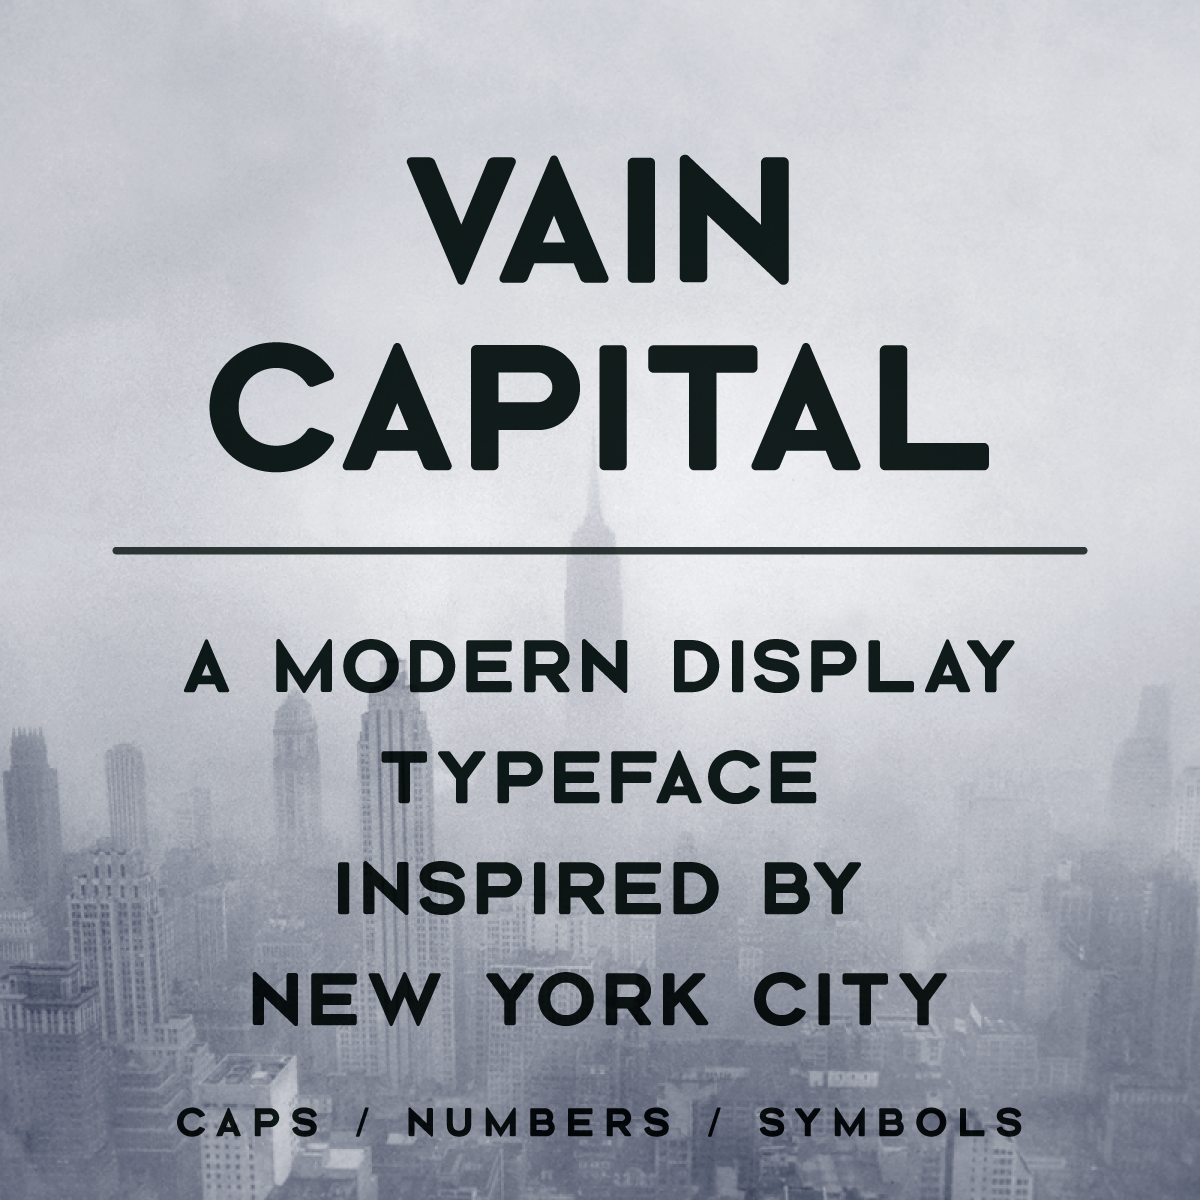 Vain Capital Typeface